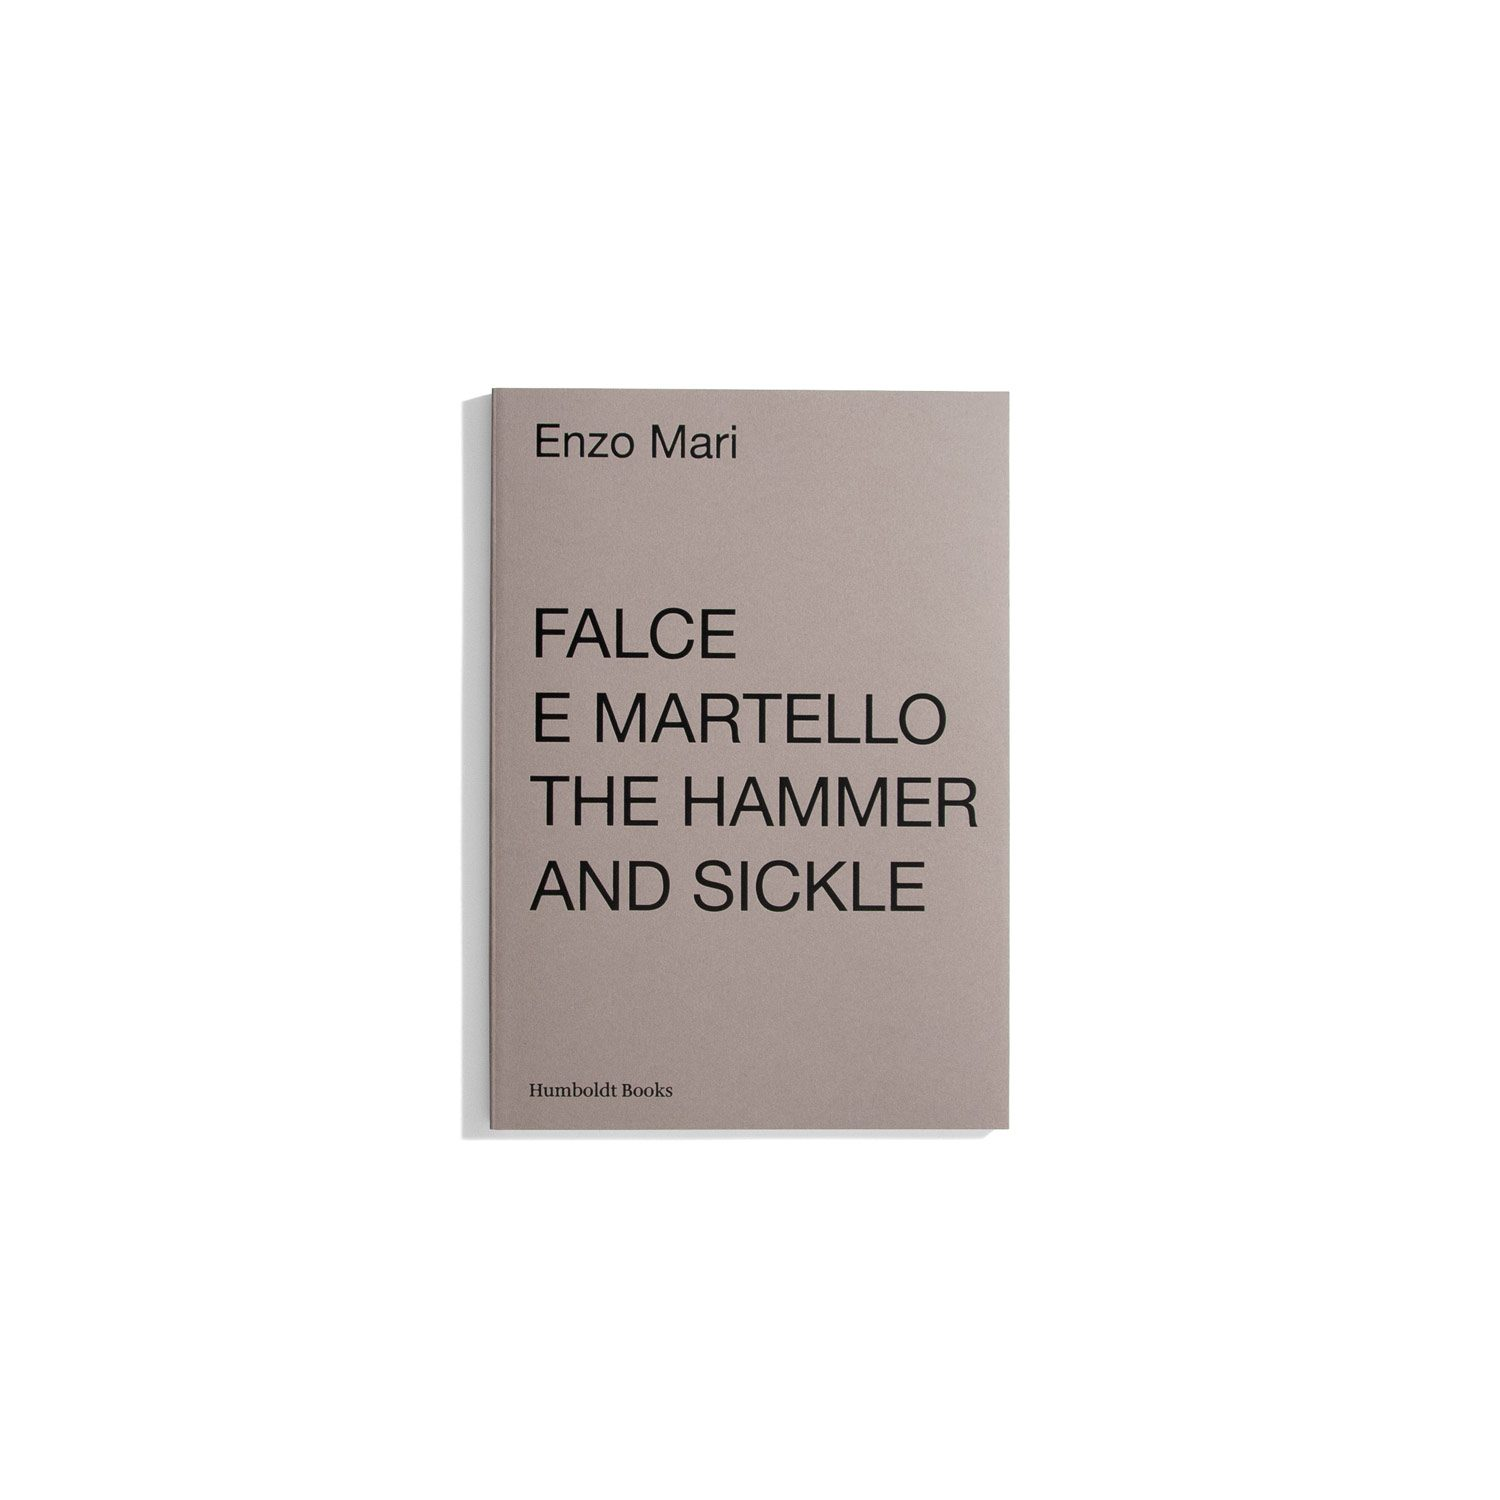 Falce e Martello: The Hammer and Sickle - Enzo Mari